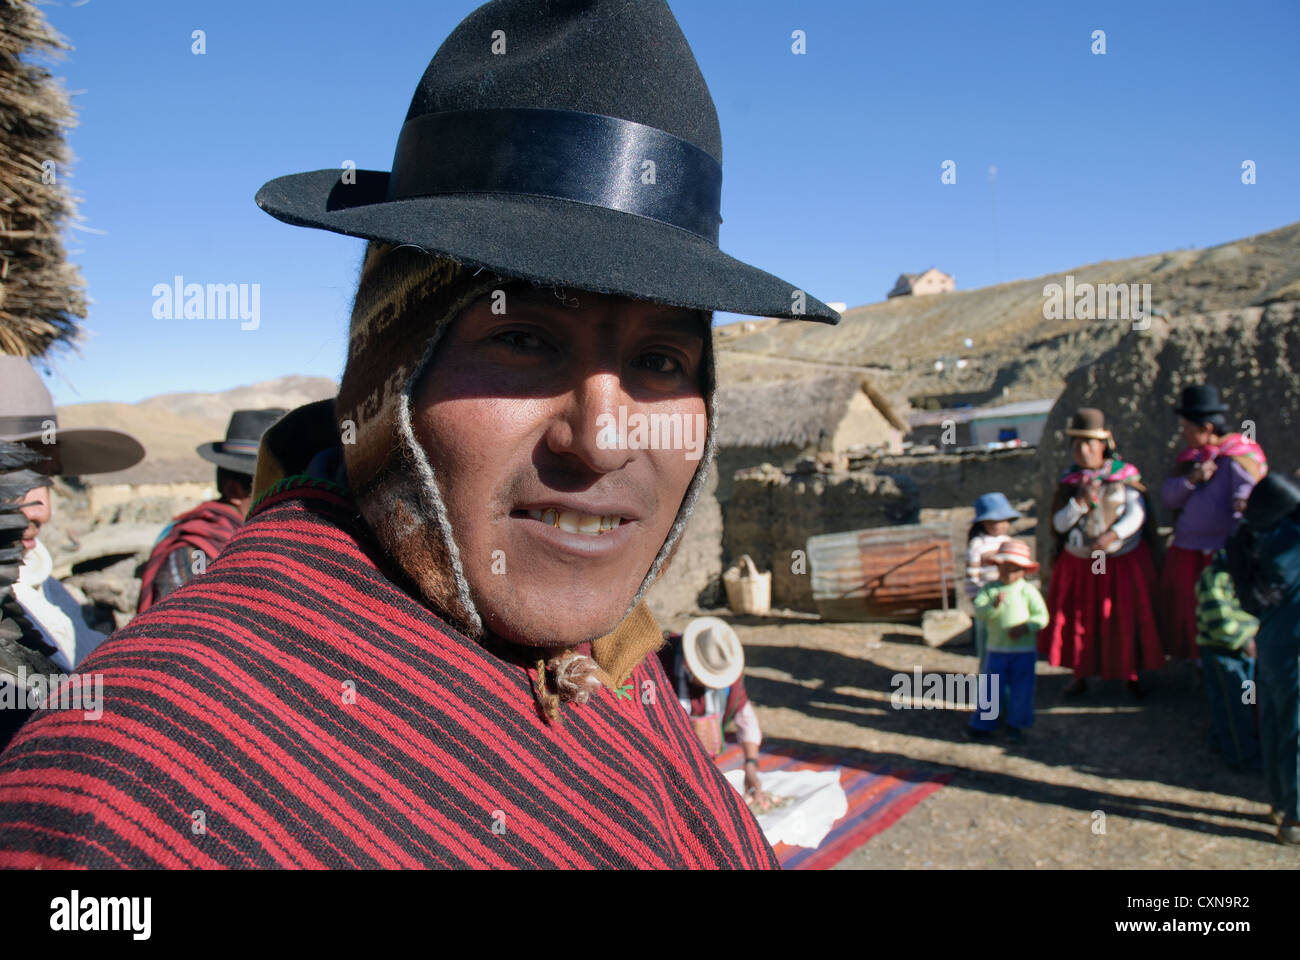 Aymara in traditional dress in the community of Tuni, Cordillera Real - Stock Image